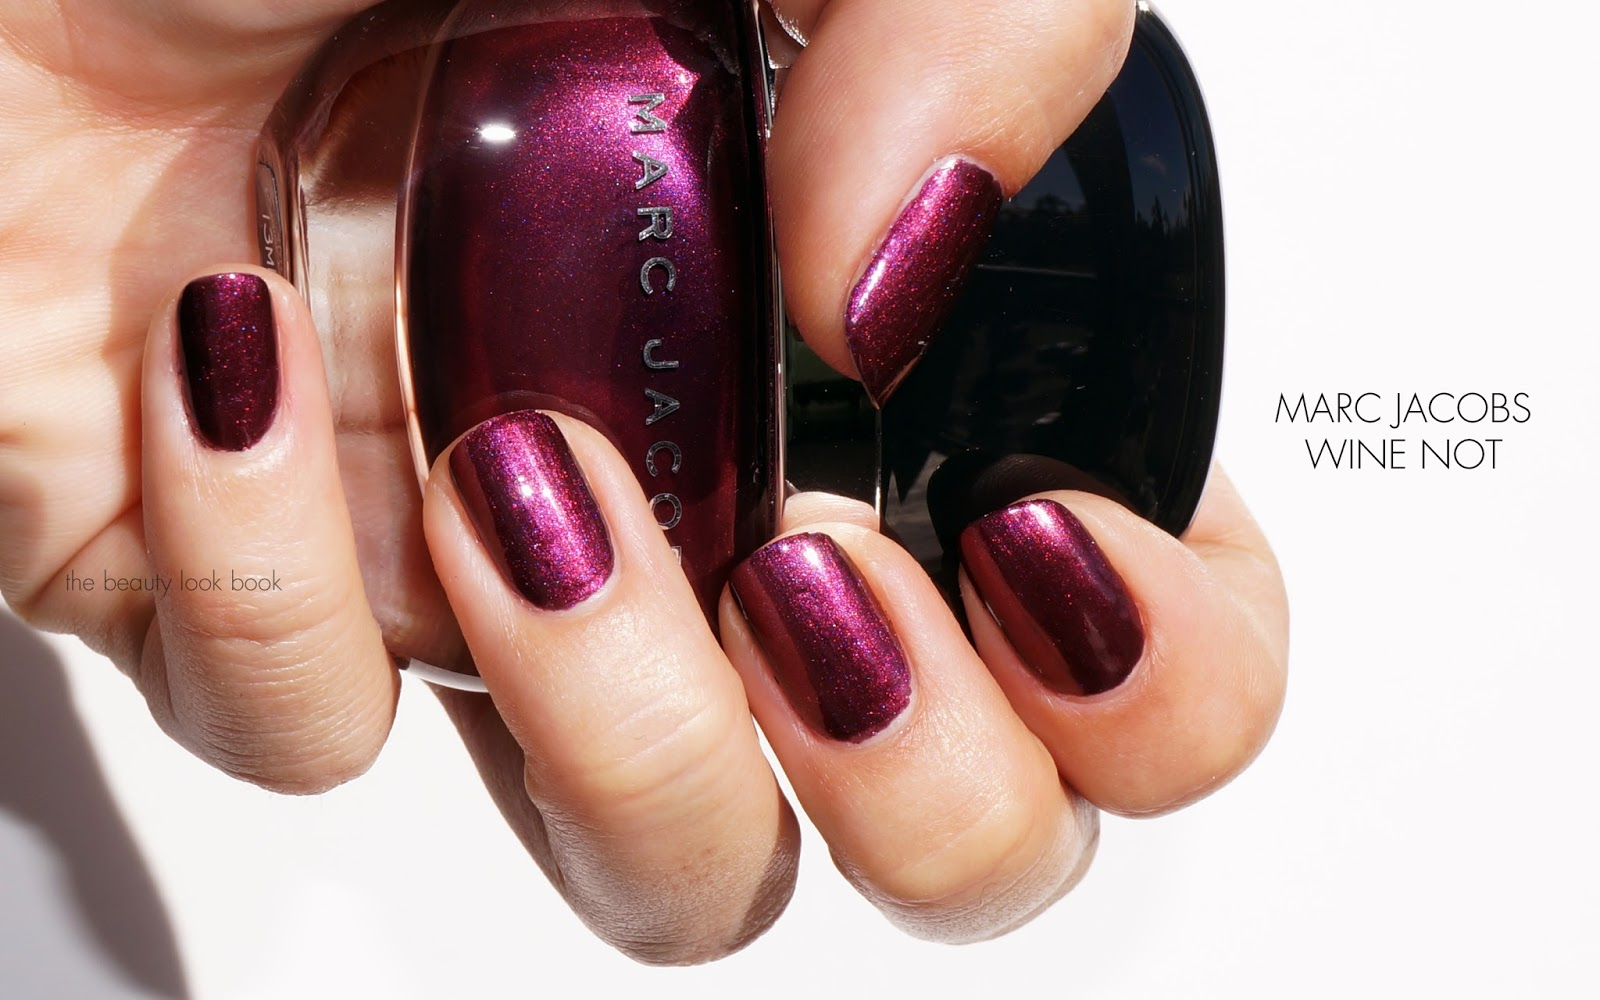 Marc Jacobs Beauty Enamored Hi Shine Nail Lacquer Wine Not The Look Book